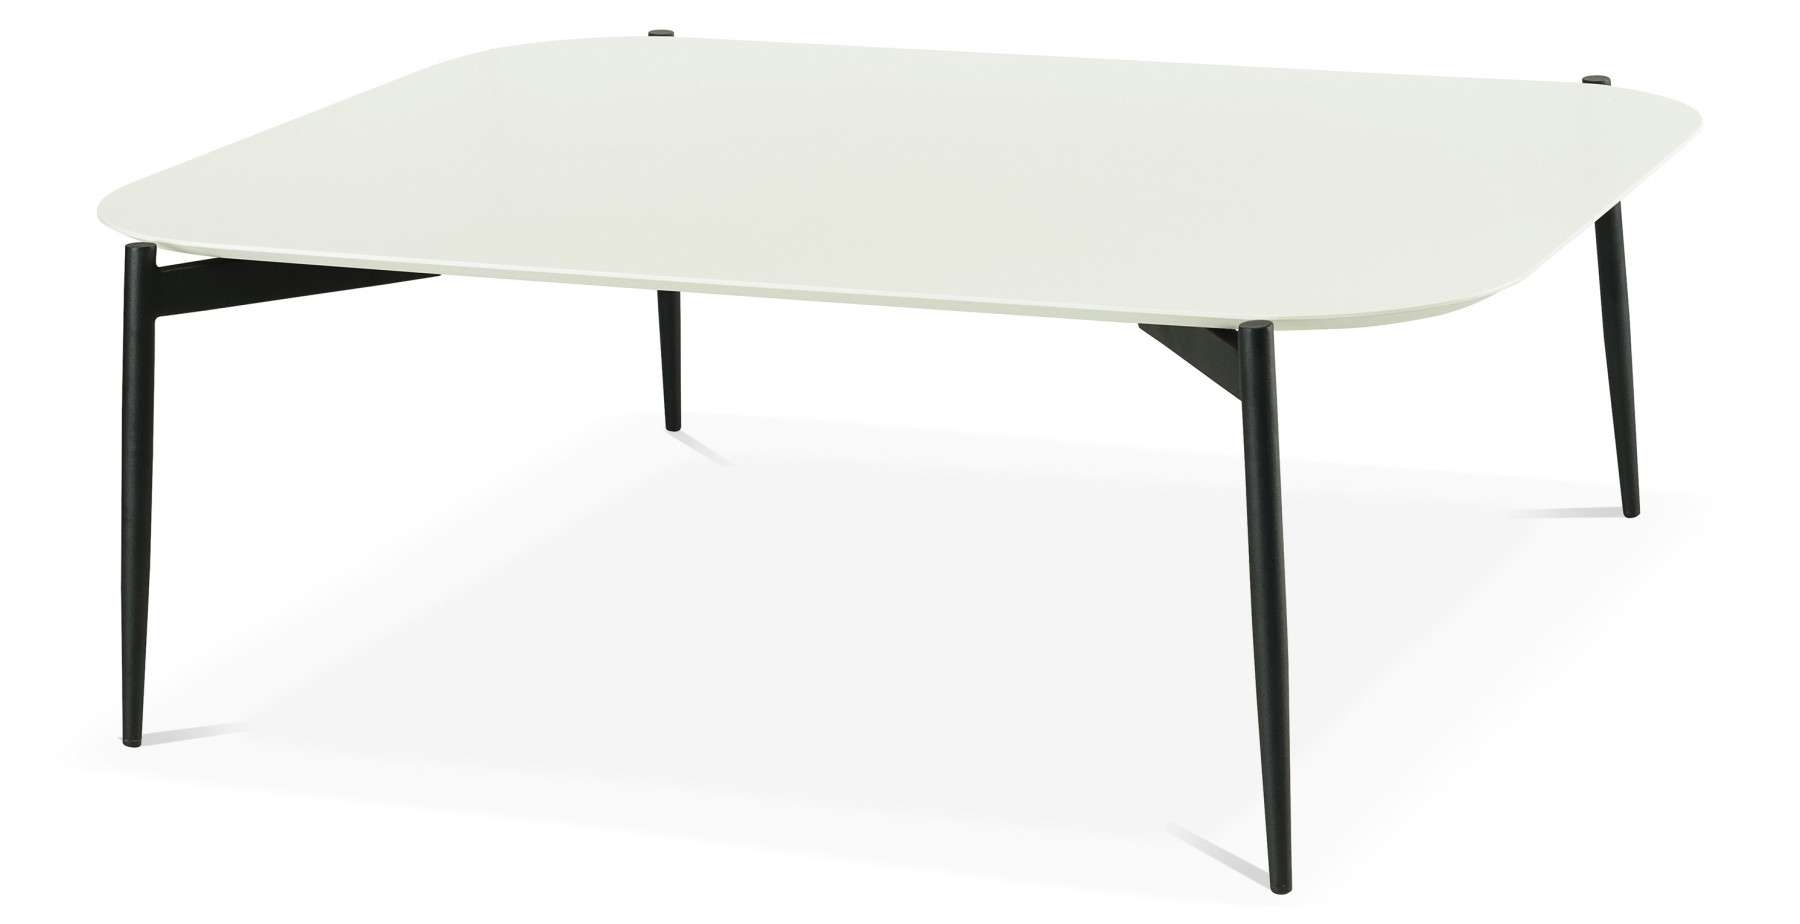 Most Recent High Coffee Tables Throughout Alec High Coffee Table, White Fern & Grey (View 12 of 20)